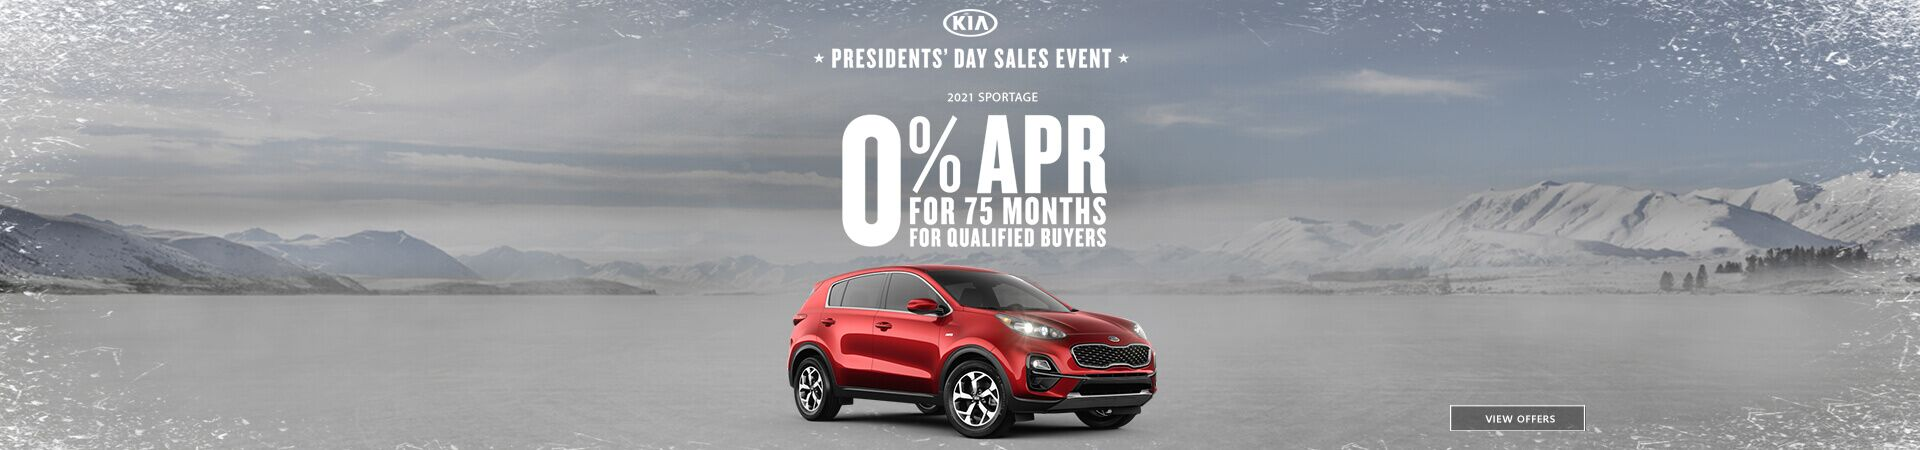 Presidents' Day Sportage